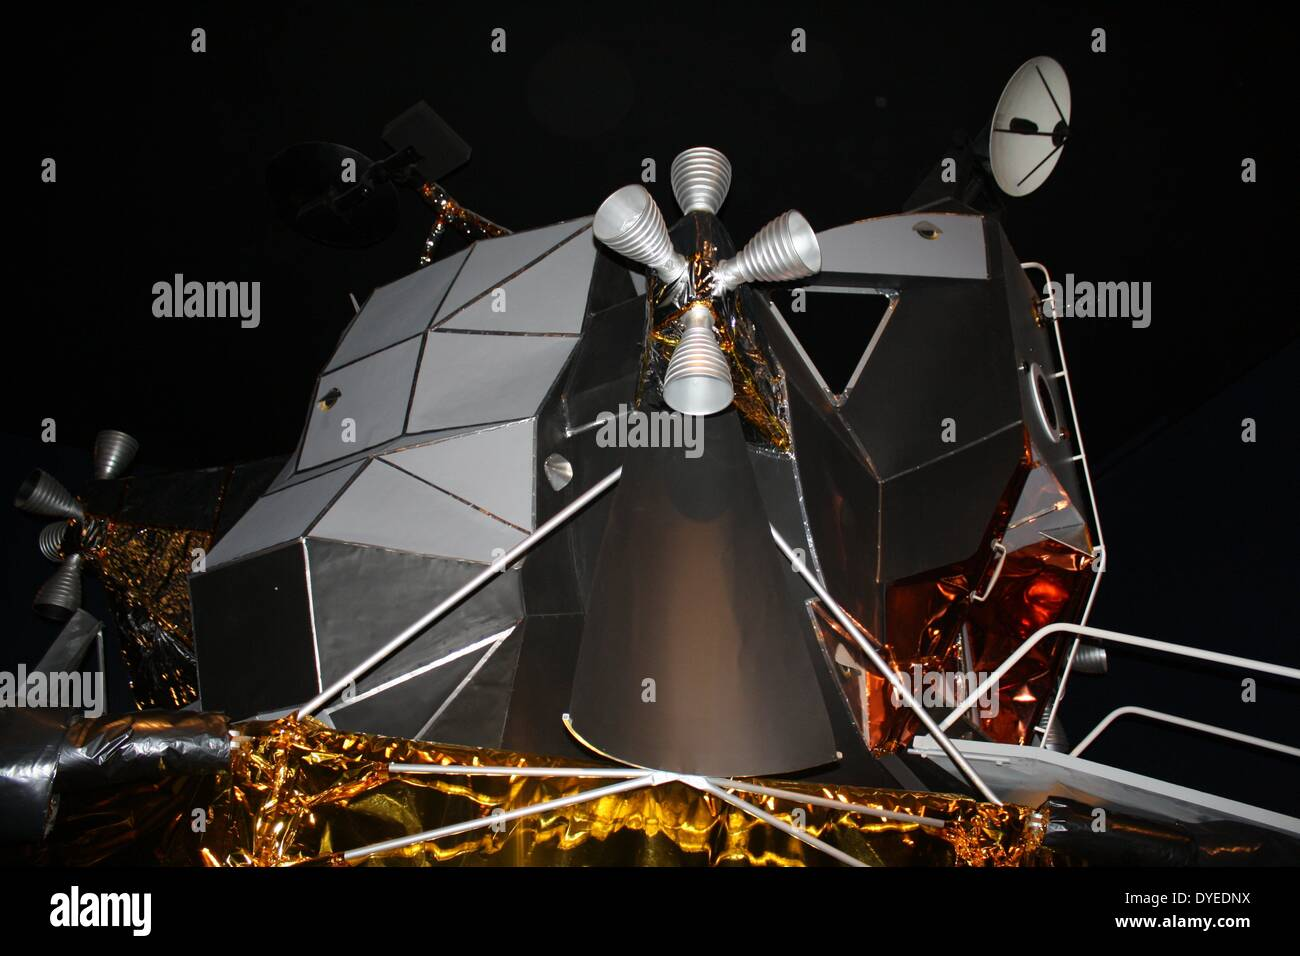 Reconstruction of the Apollo 11 Moon Landing 2013 A.D. - Stock Image